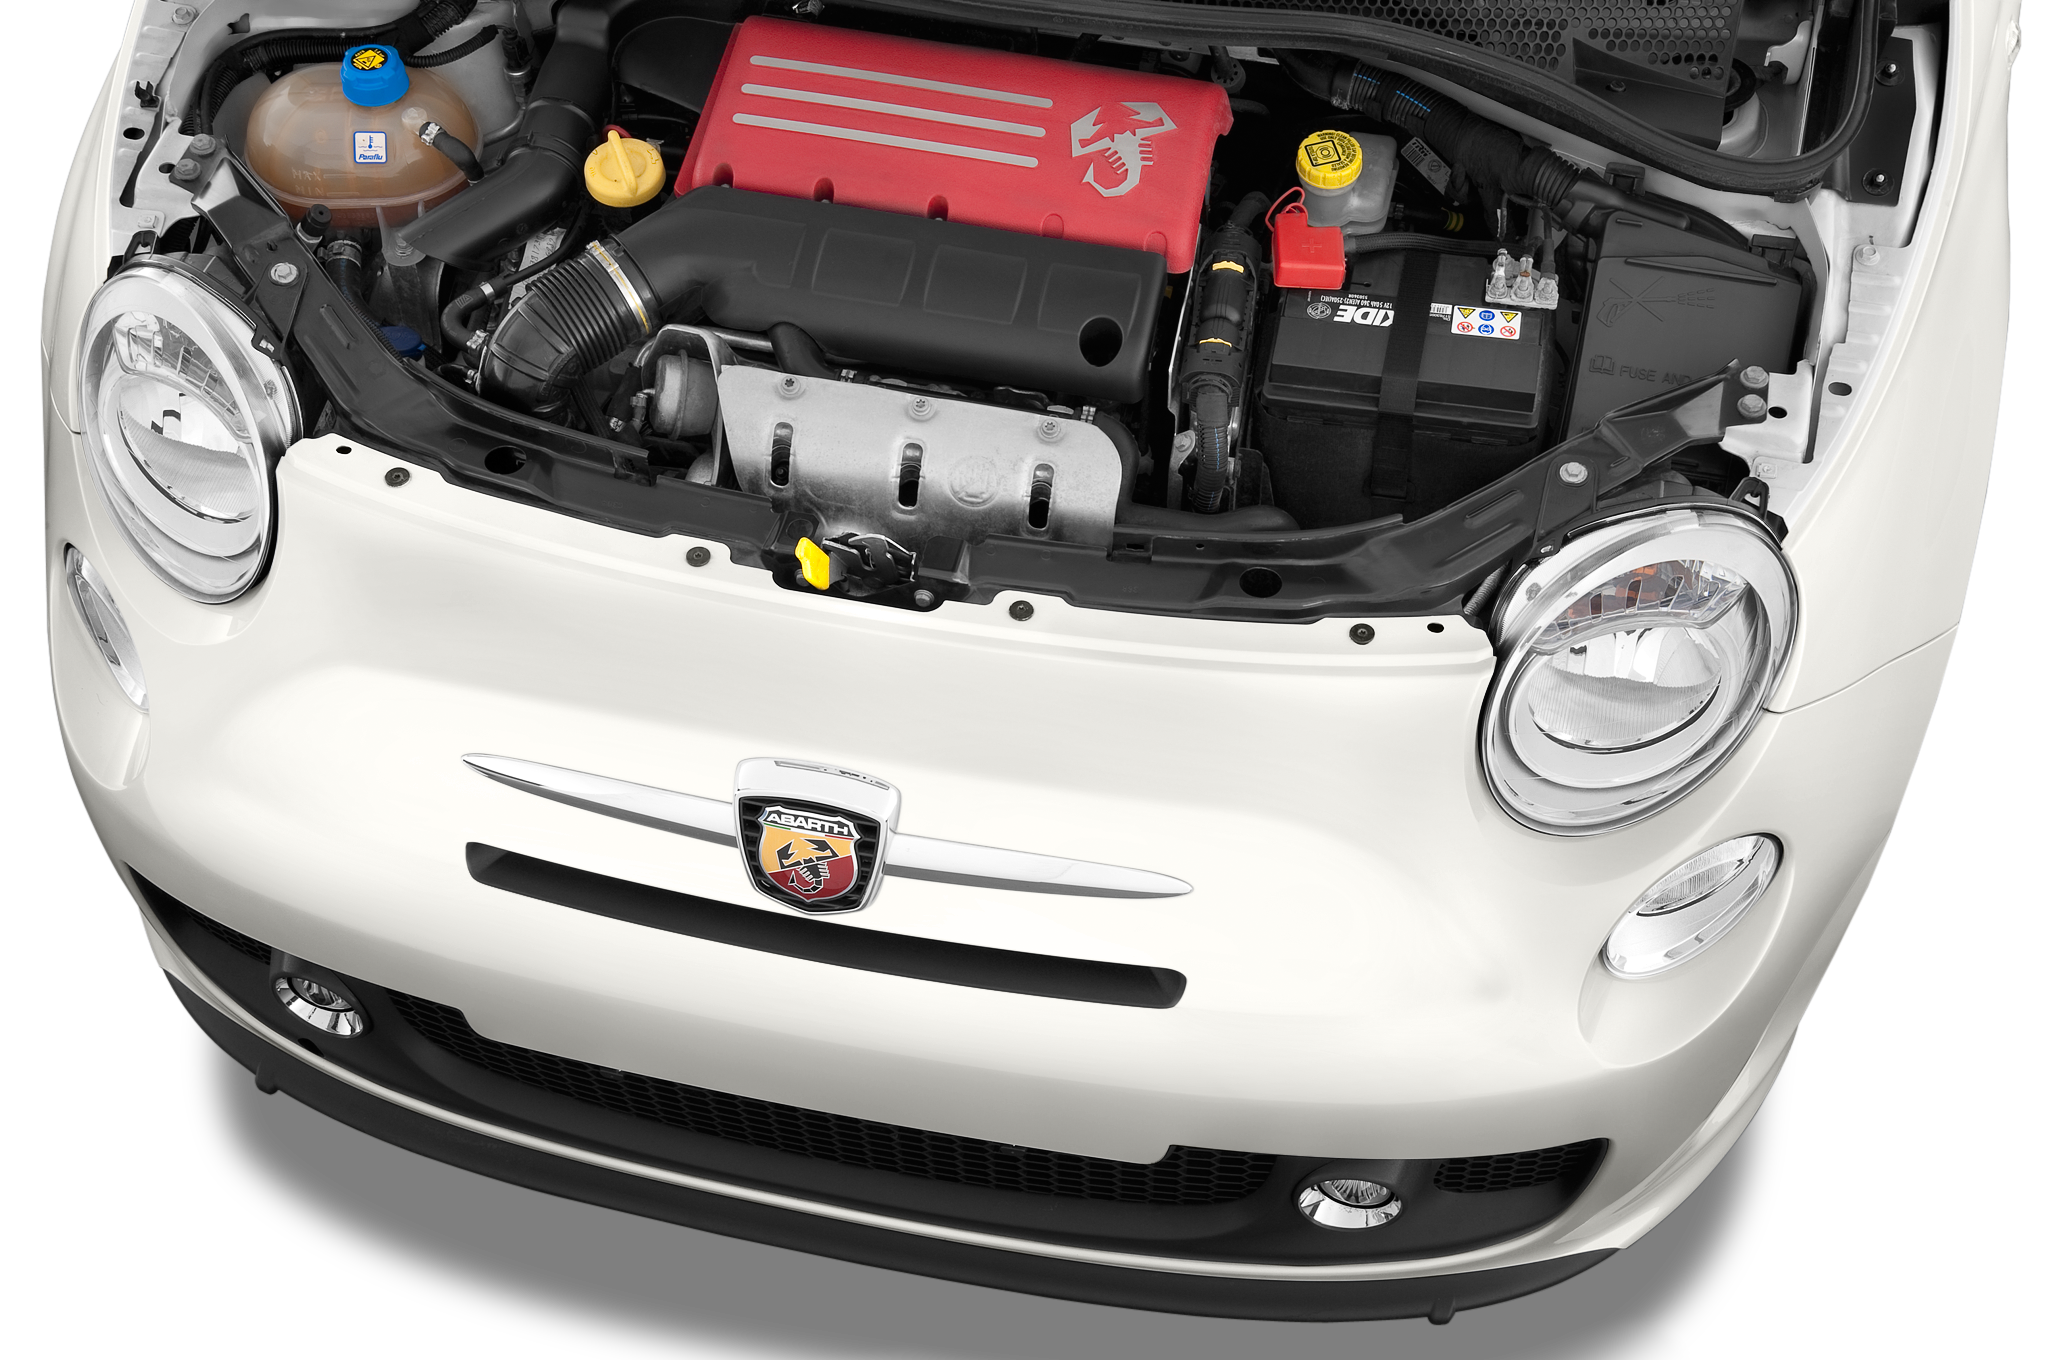 review drives test bhp reports ownership drive bay forum abarth team fiat initial engine motor punto